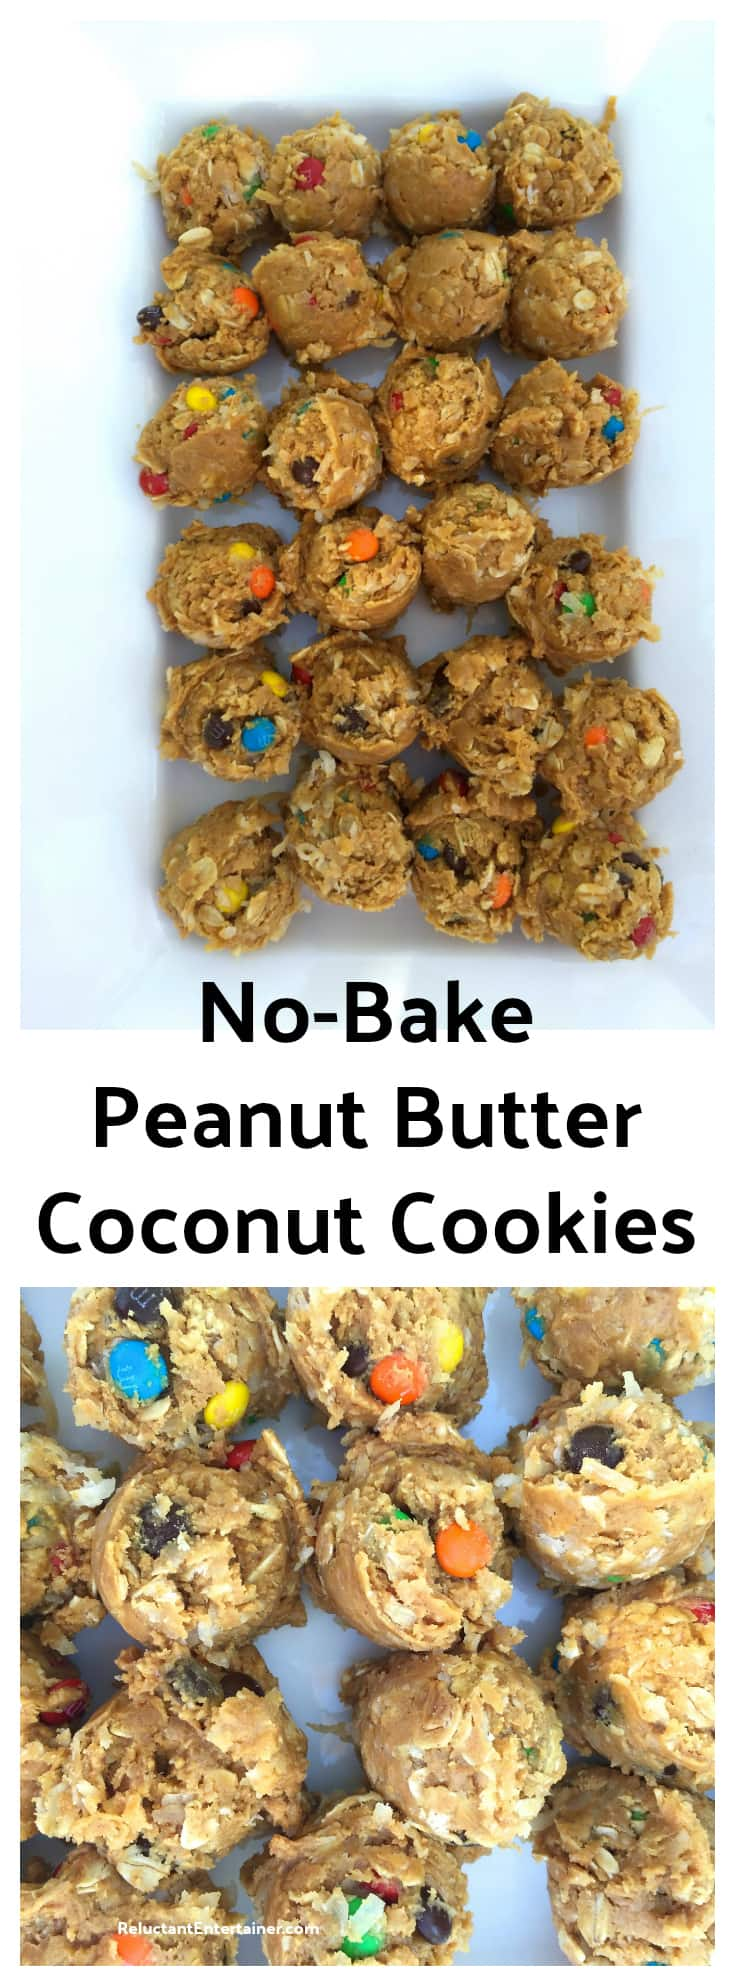 No-Bake Peanut Butter Coconut Cookies